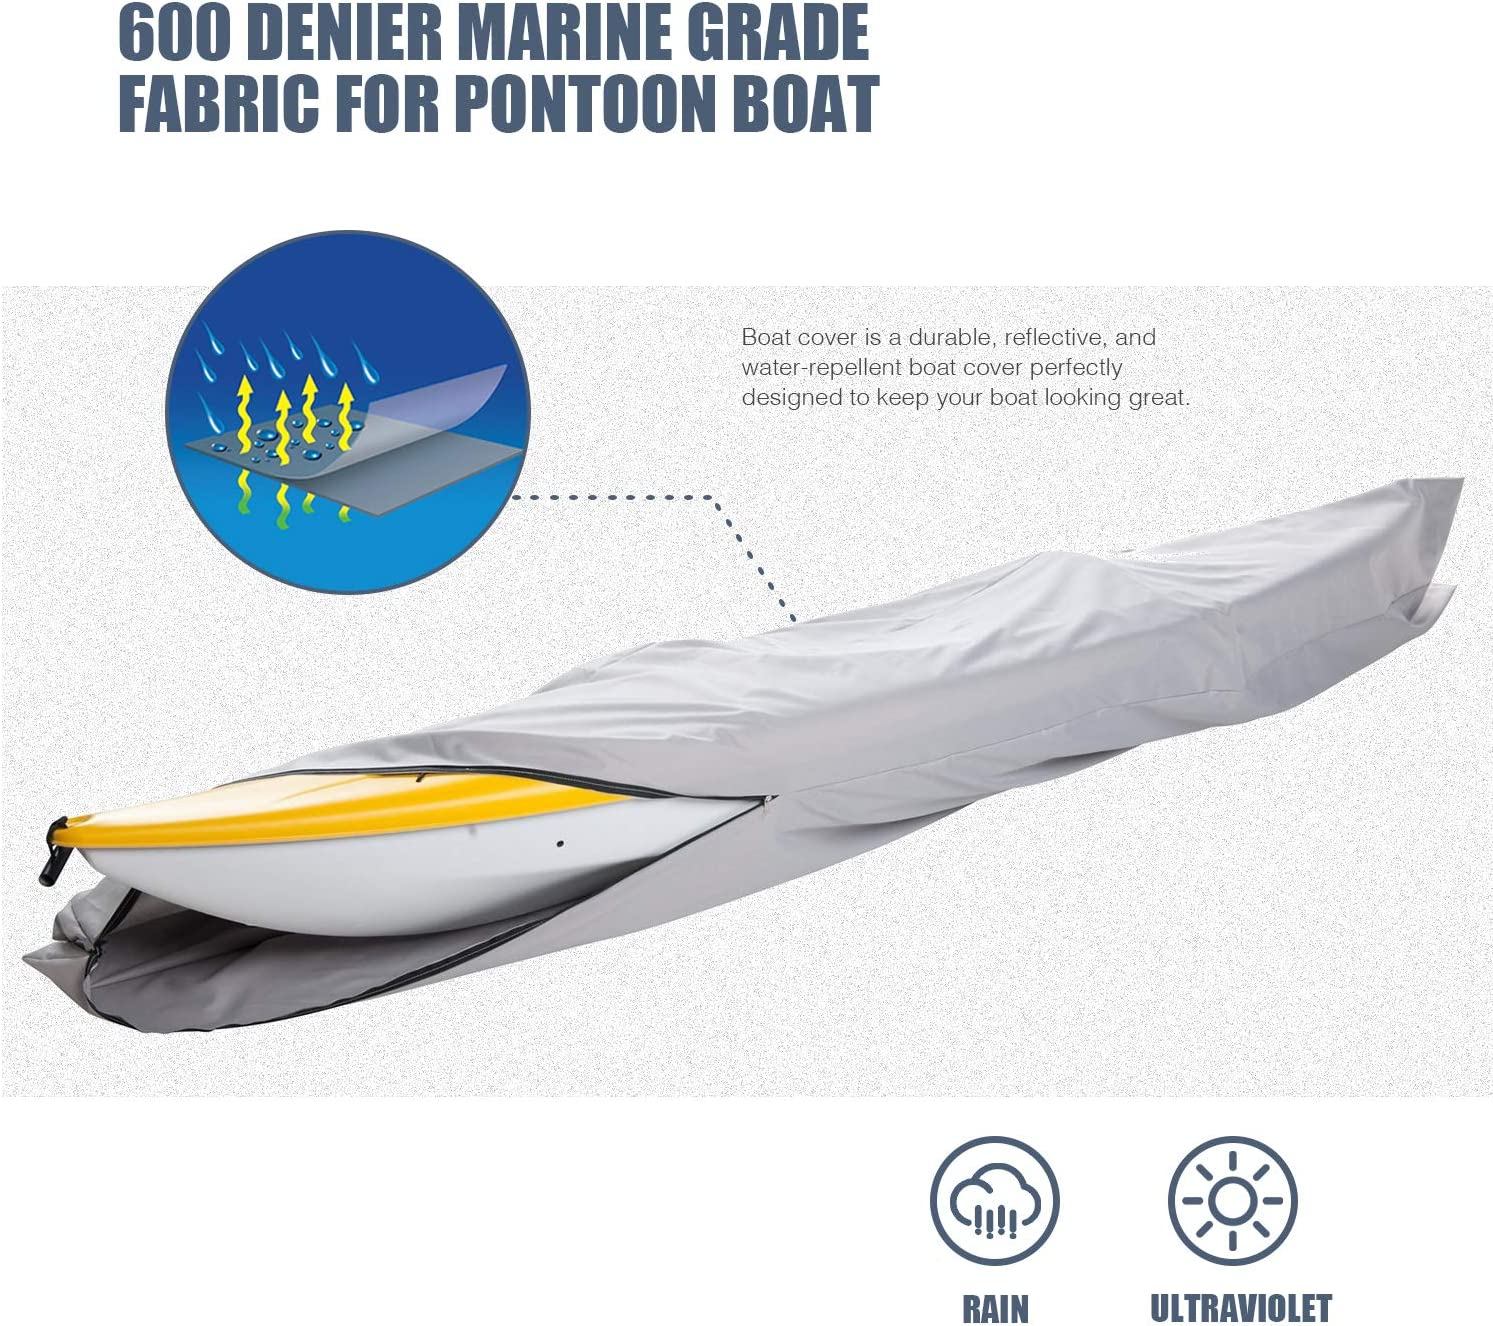 GOODSMANN Trailable Marine Grade Heavy Duty 600D Kayak Cover Beam Width to 27 9921-0172-31 Canoe Cover Fits Fits 10ft Length